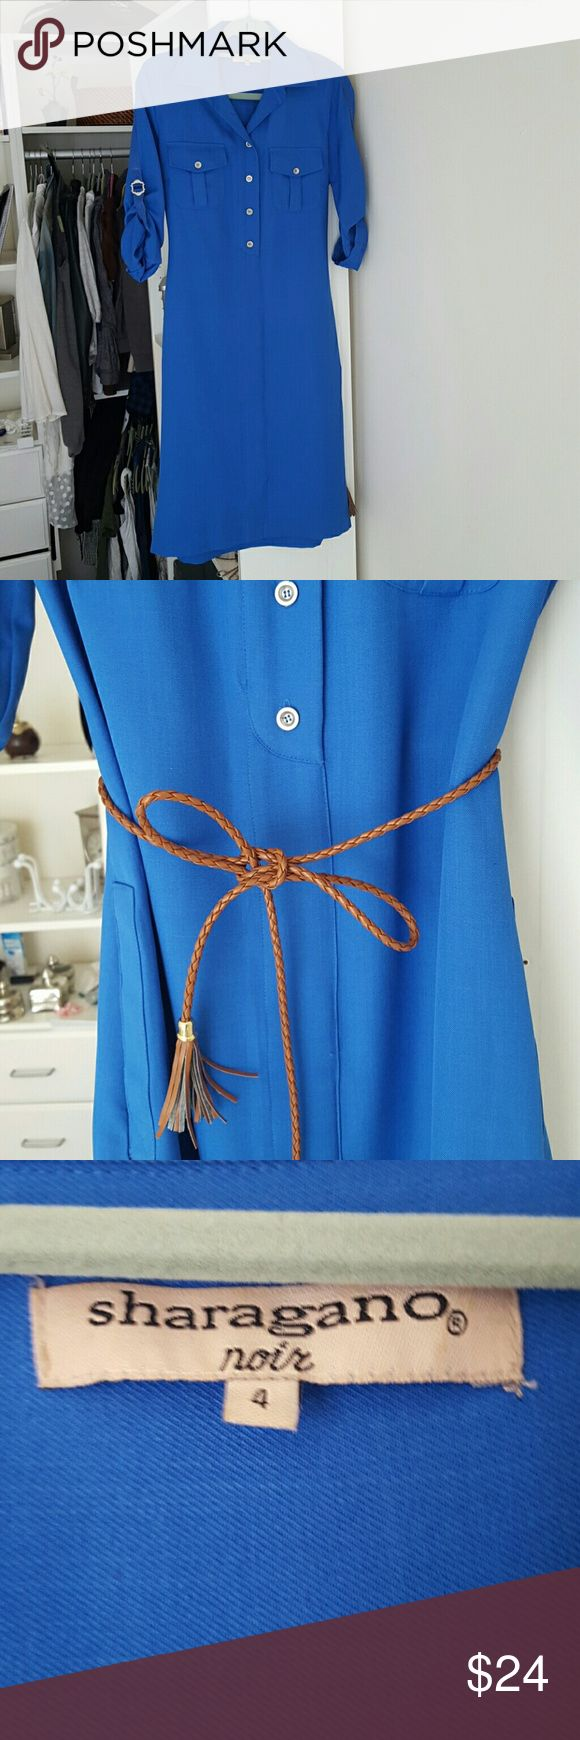 Conservative dress in electric blue Comes with a removable braided belt. Fantastic condition but doesn't fit me well and I'm trying to make space in my closet. Sharagano Noir Dresses Midi